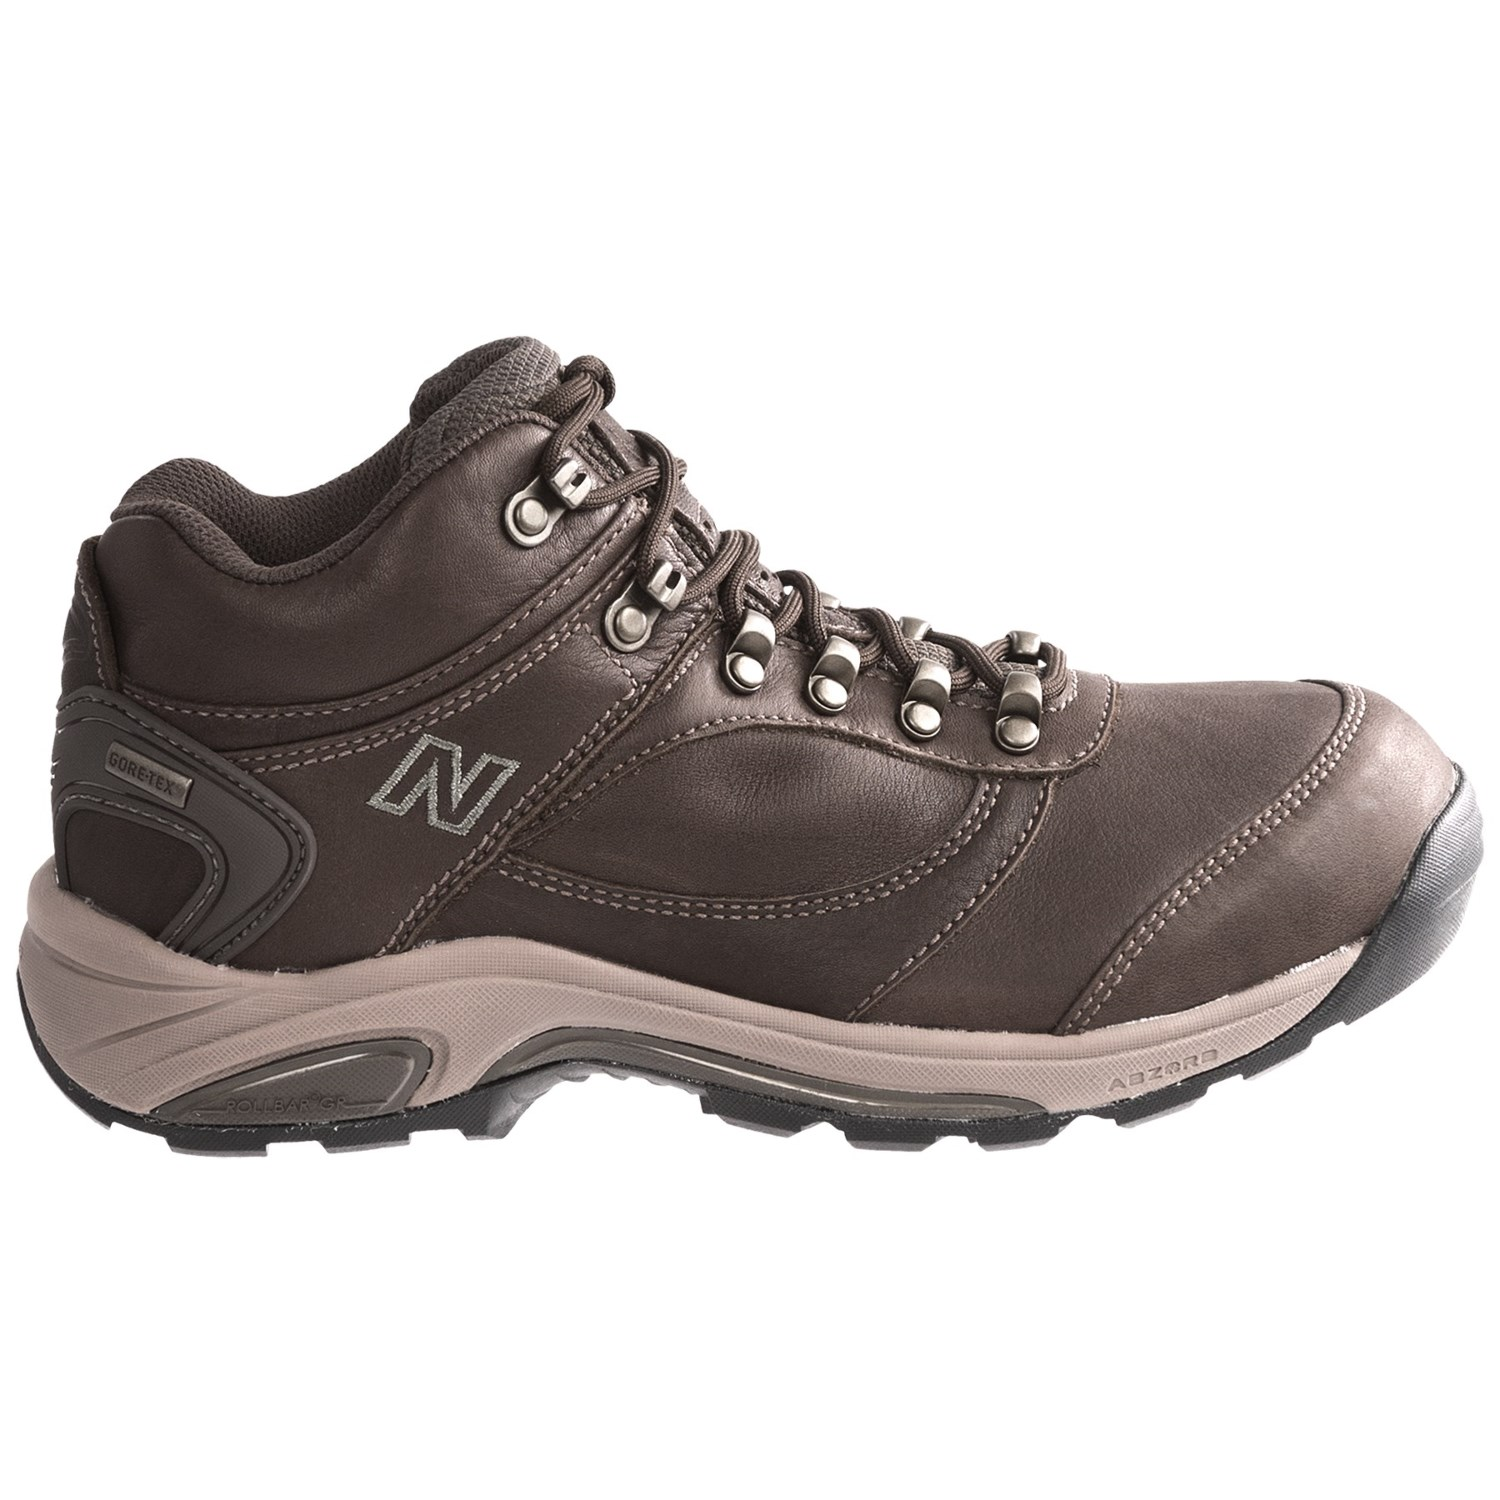 Awesome The Womens Version Has A Furry Collar The New Balance 1000, Introduced In Fall 2010, Is A Lightly Insulated Multipurpose Boot This Would Include Hiking, Snowshoeing, Snow Walking, Shoveling Snow, Apr&232s Ski, Doing Winter Errands